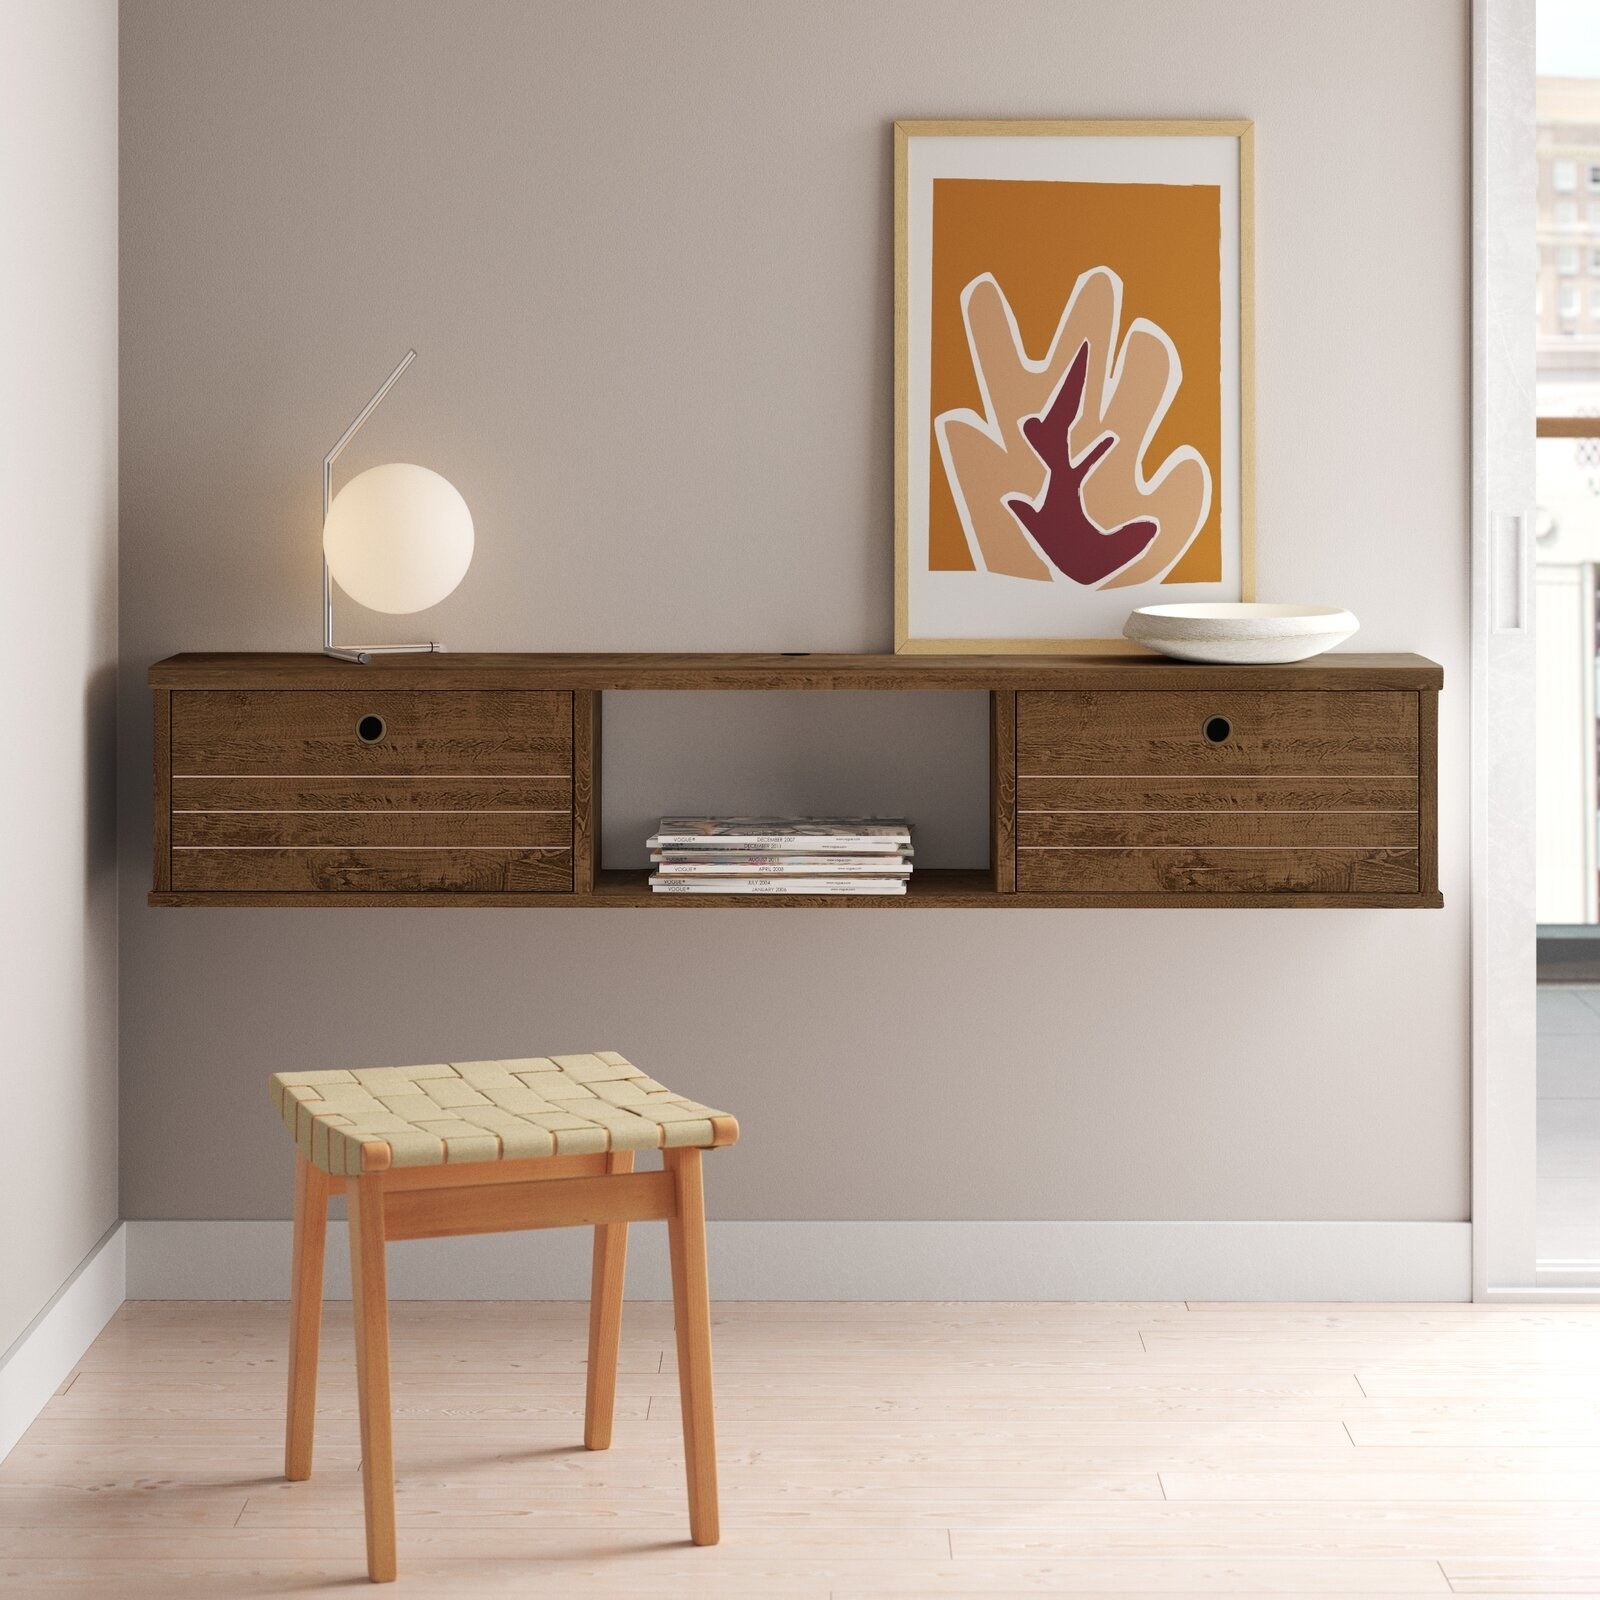 the brown console mounted on a wall